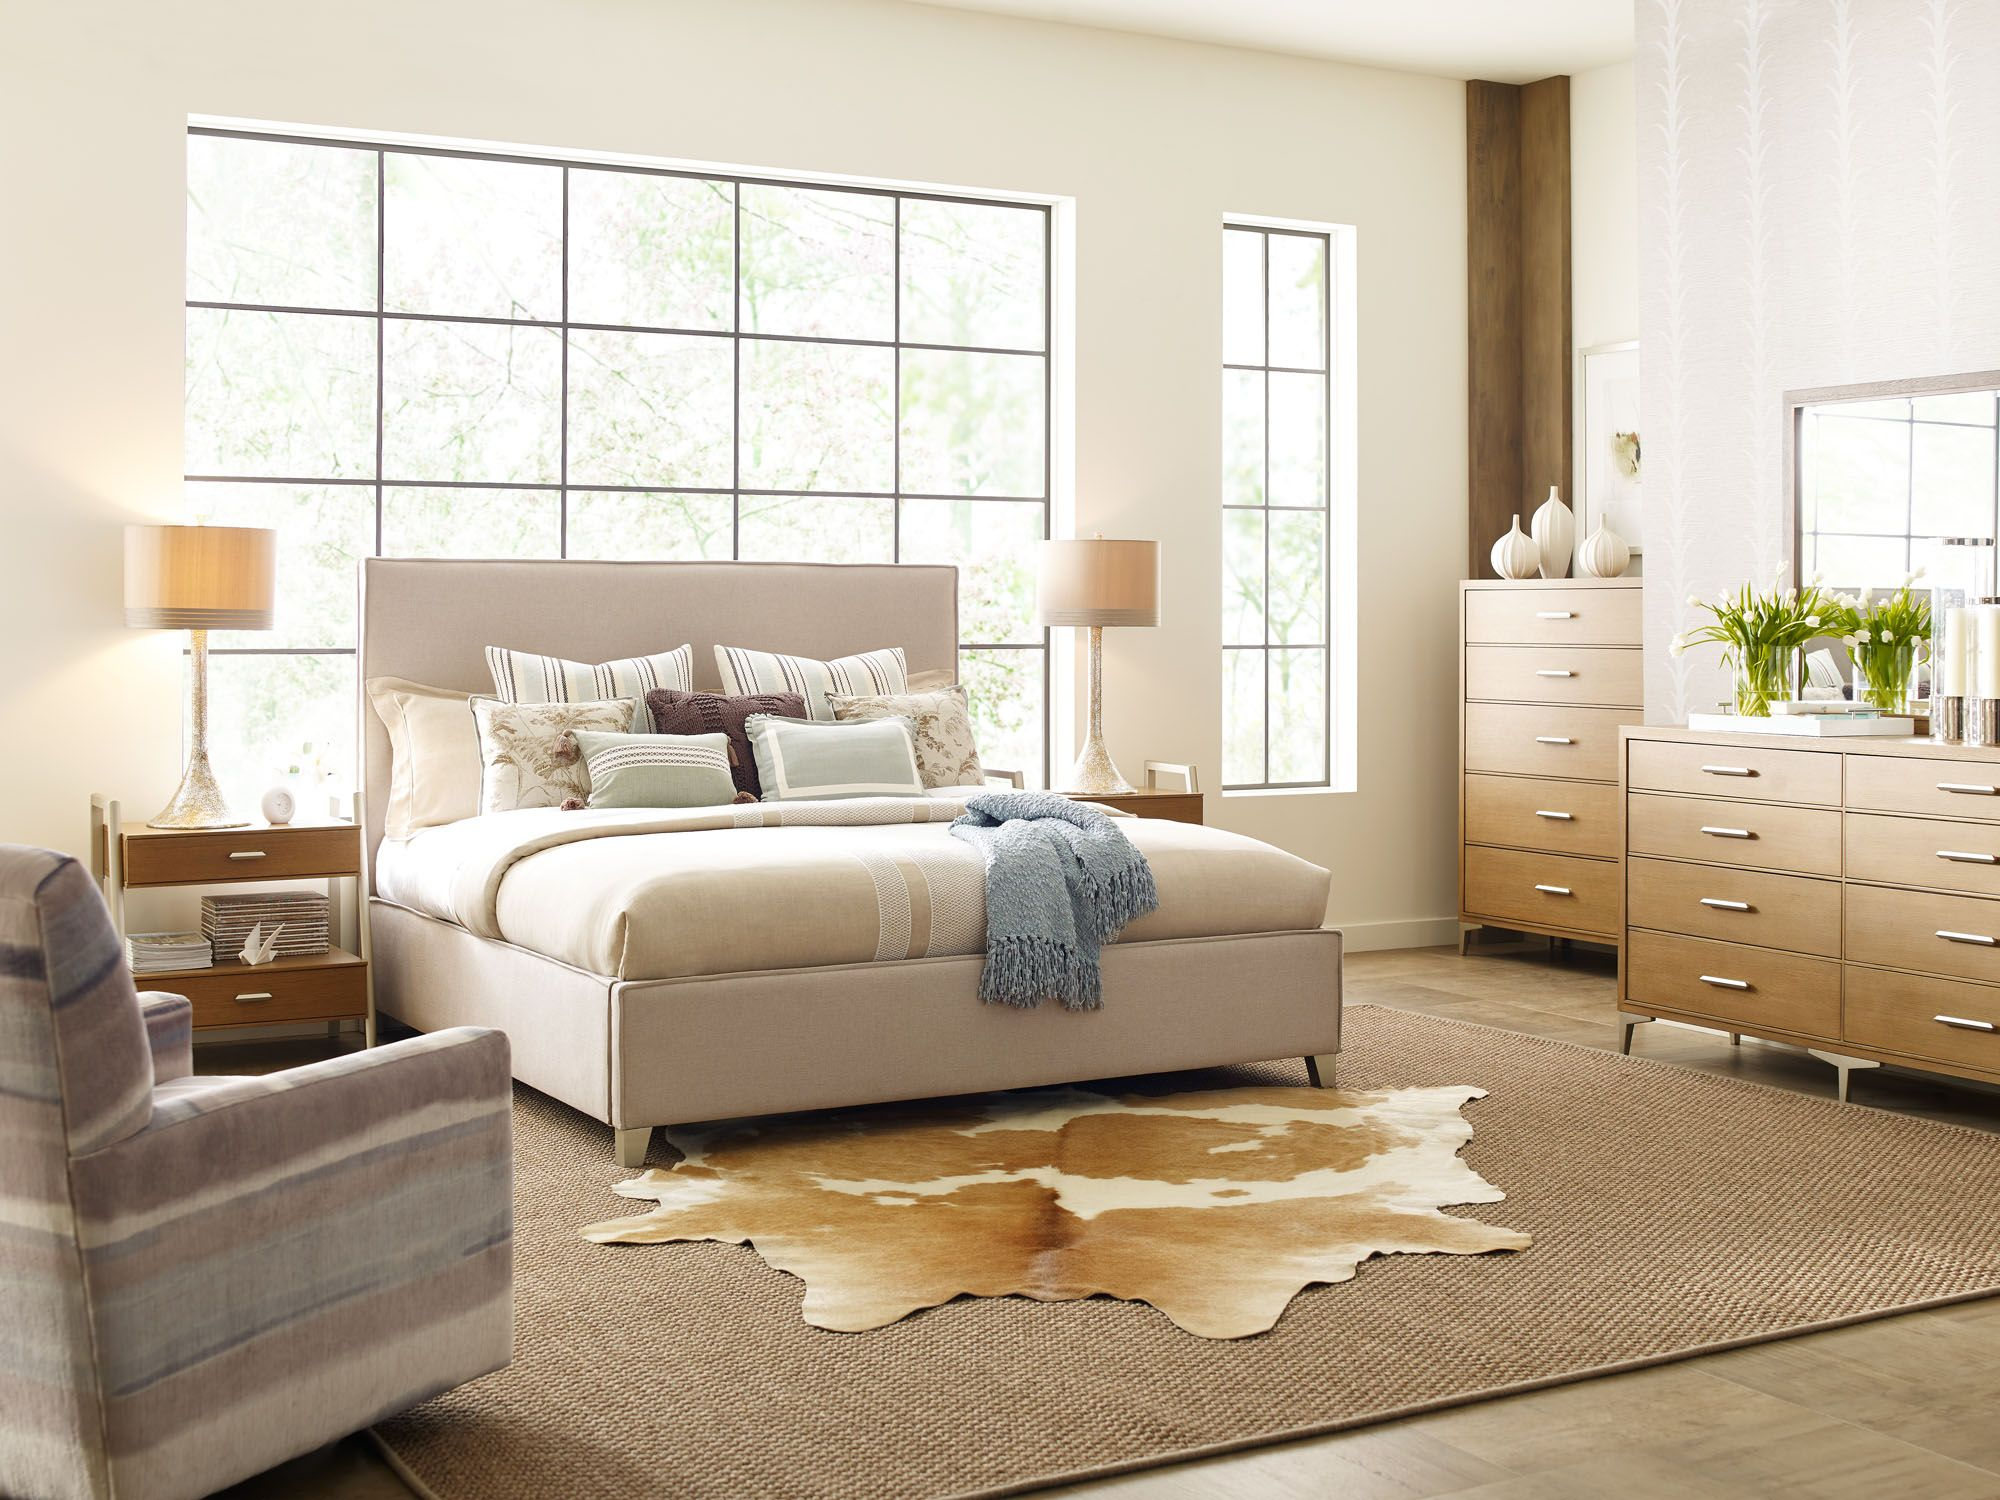 Hygge bedroom with upholstered bed from rachael ray home legacy